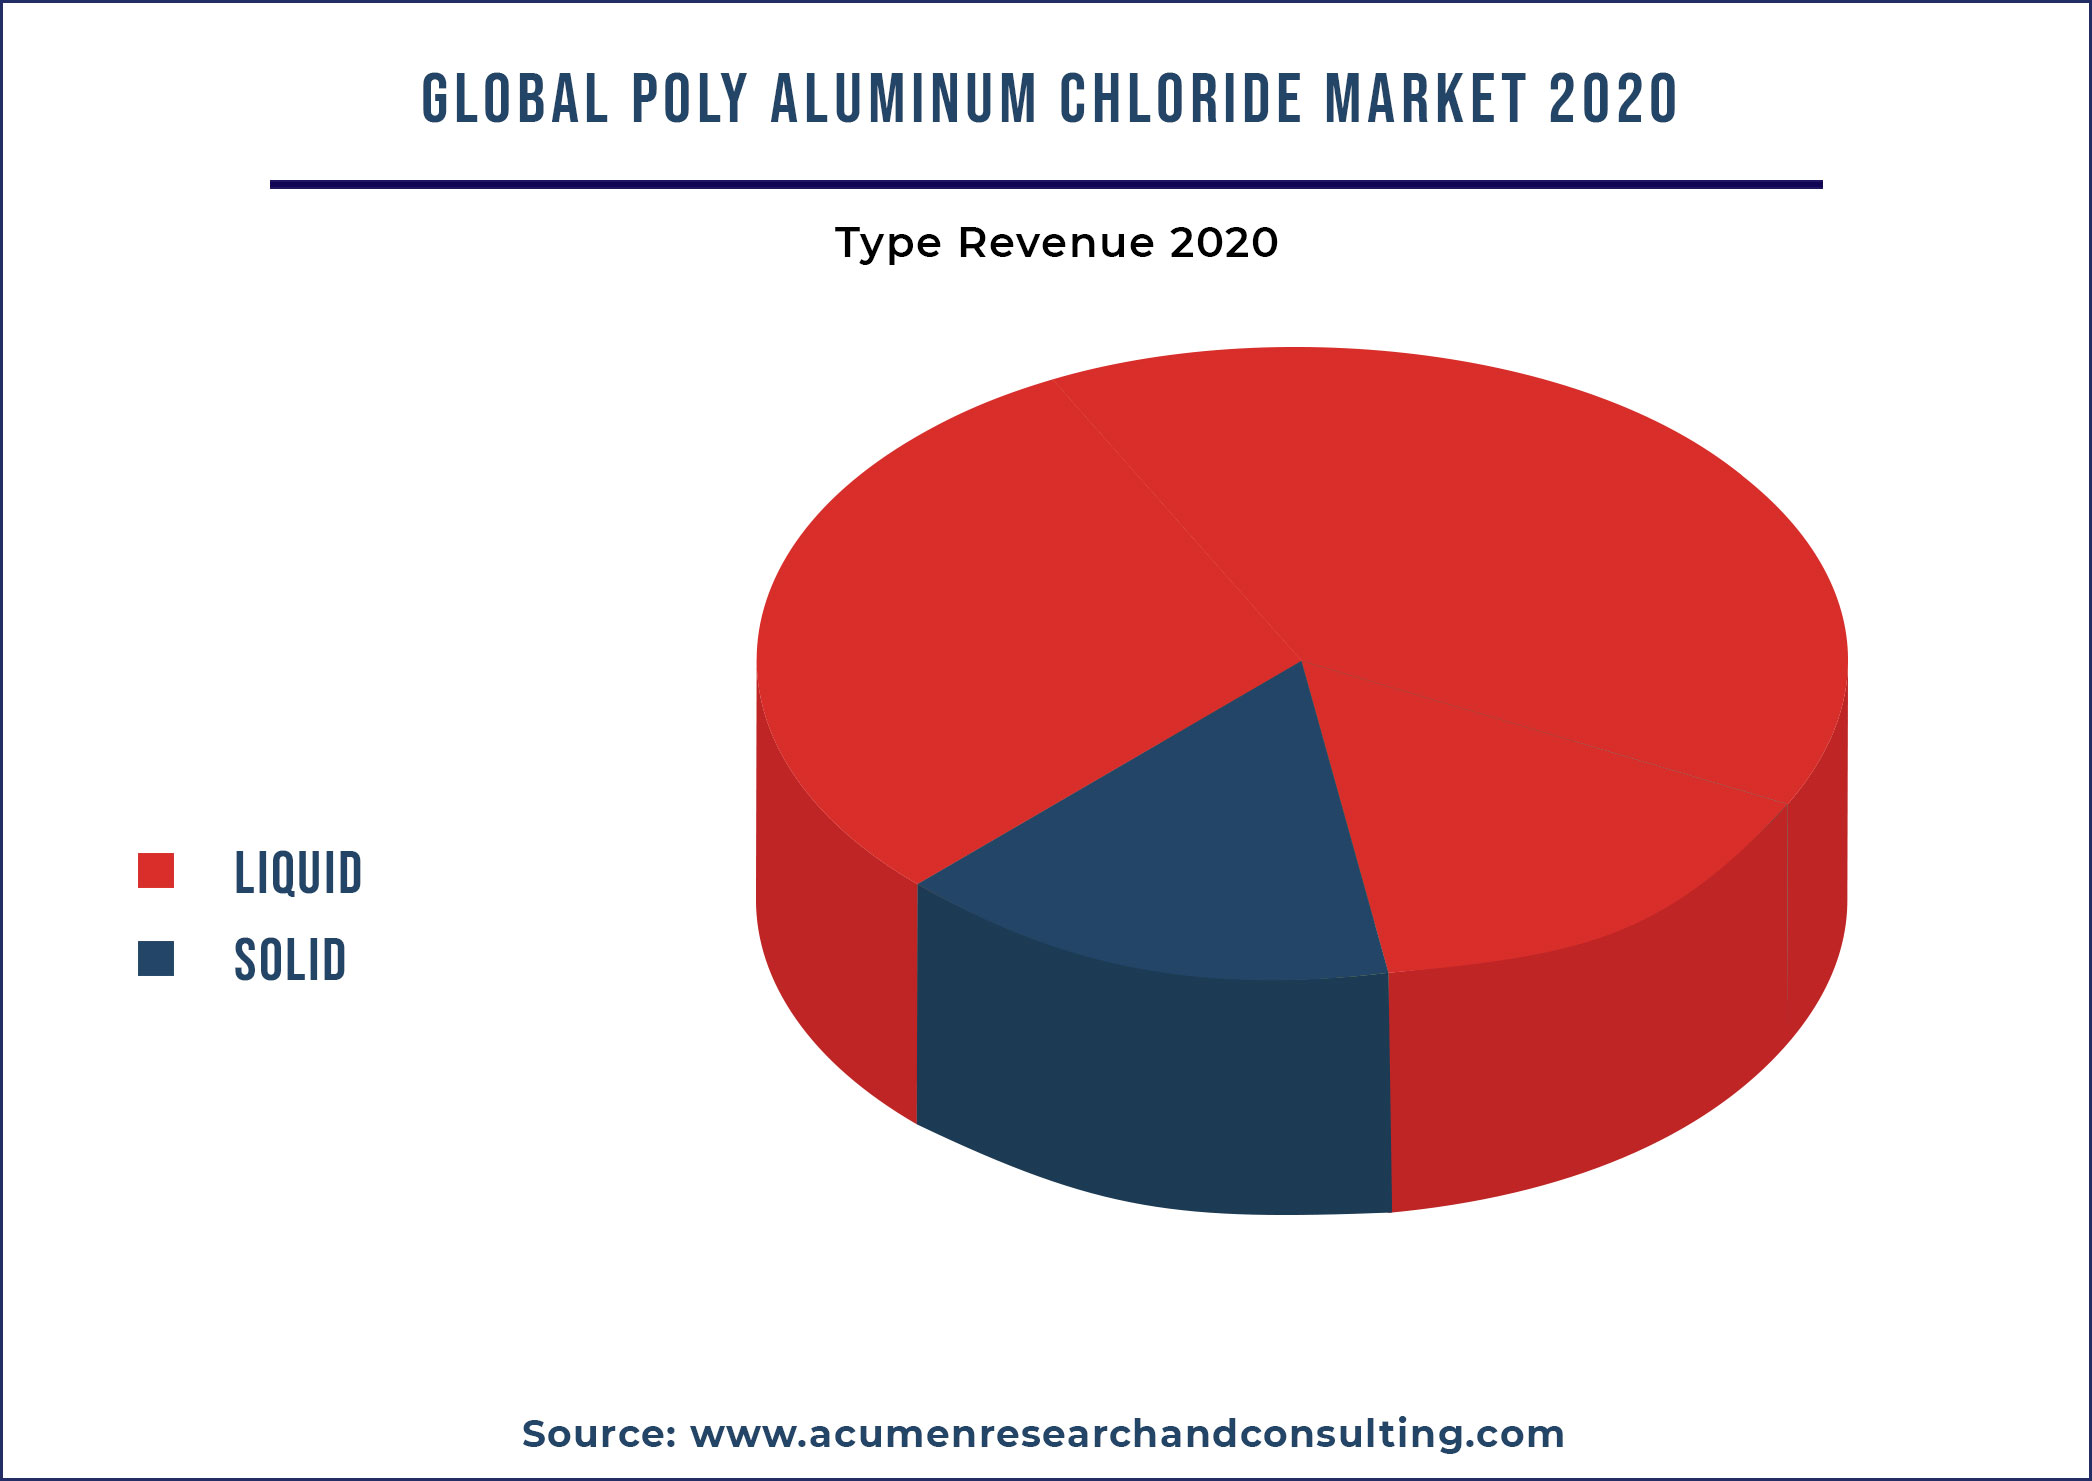 Poly Aluminum Chloride Market By Type 2021 - 2028